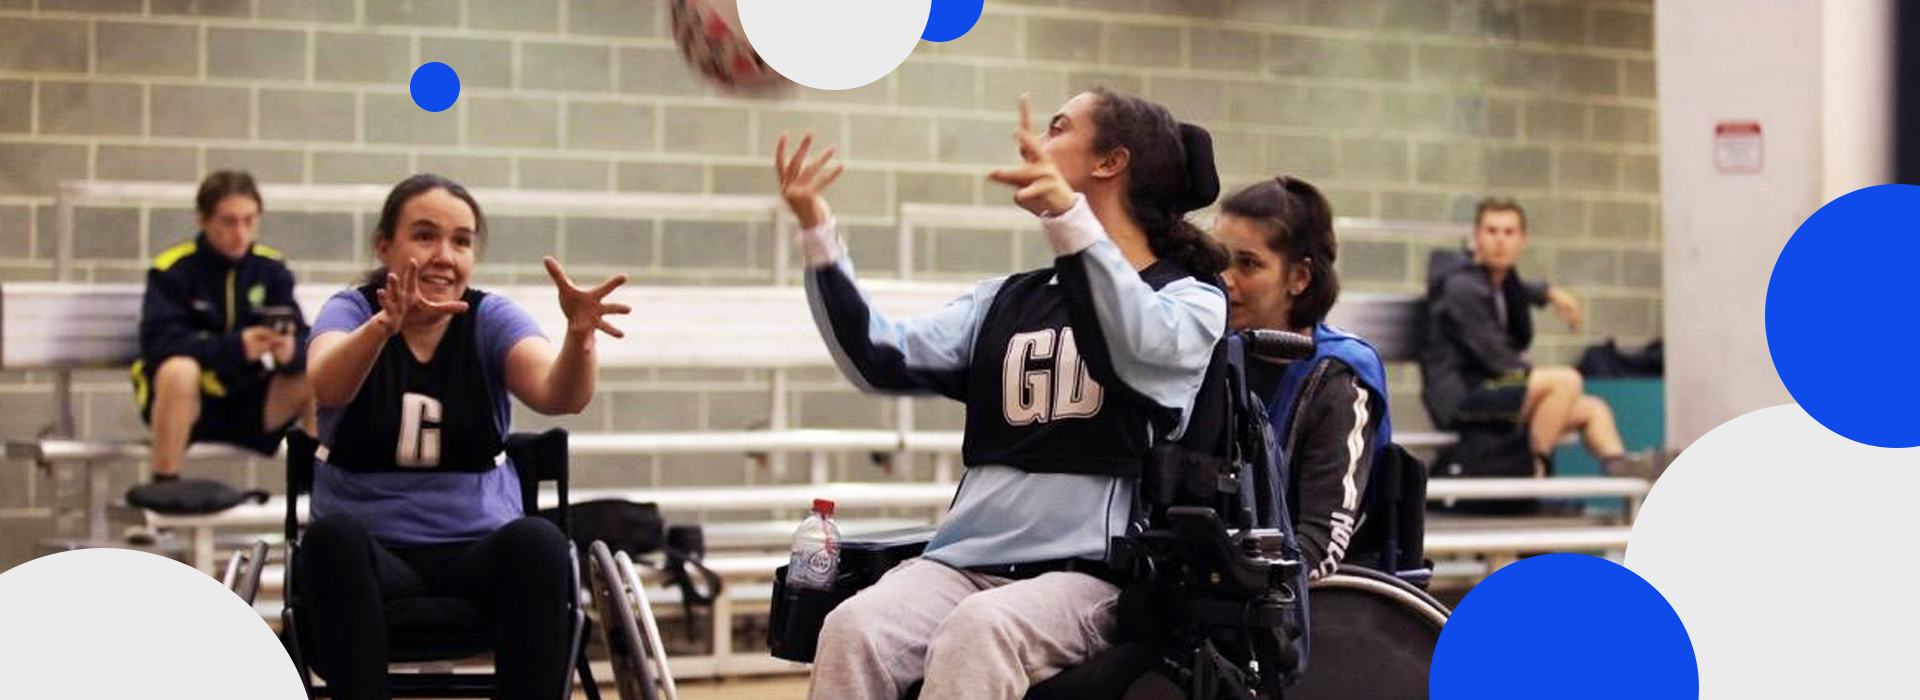 A group of people in wheelchairs playing Wheelchair Netball